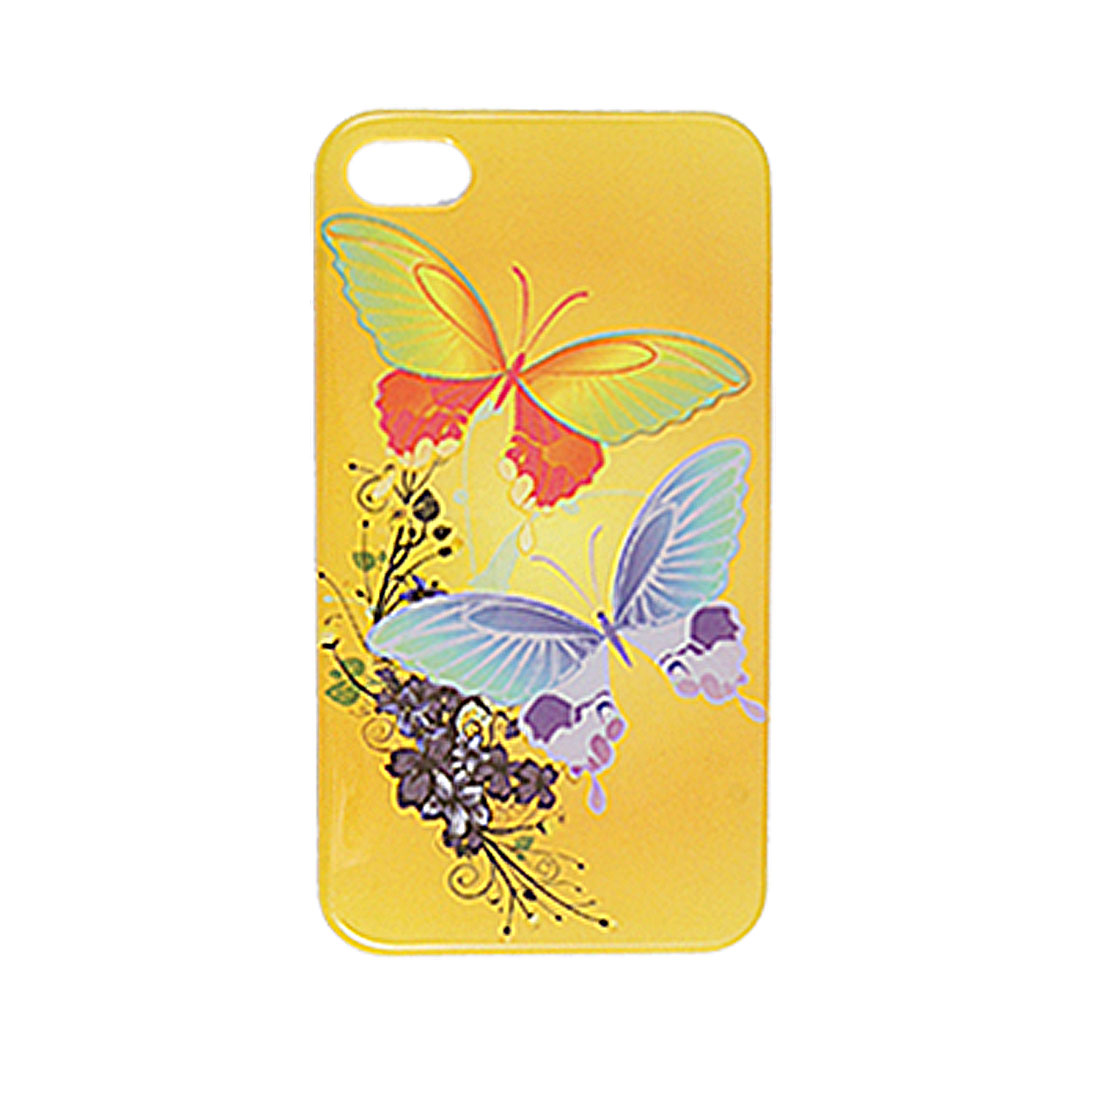 Butterfly Floral Hard IMD Plastic Protector Cover for iPhone 4 4G 4S